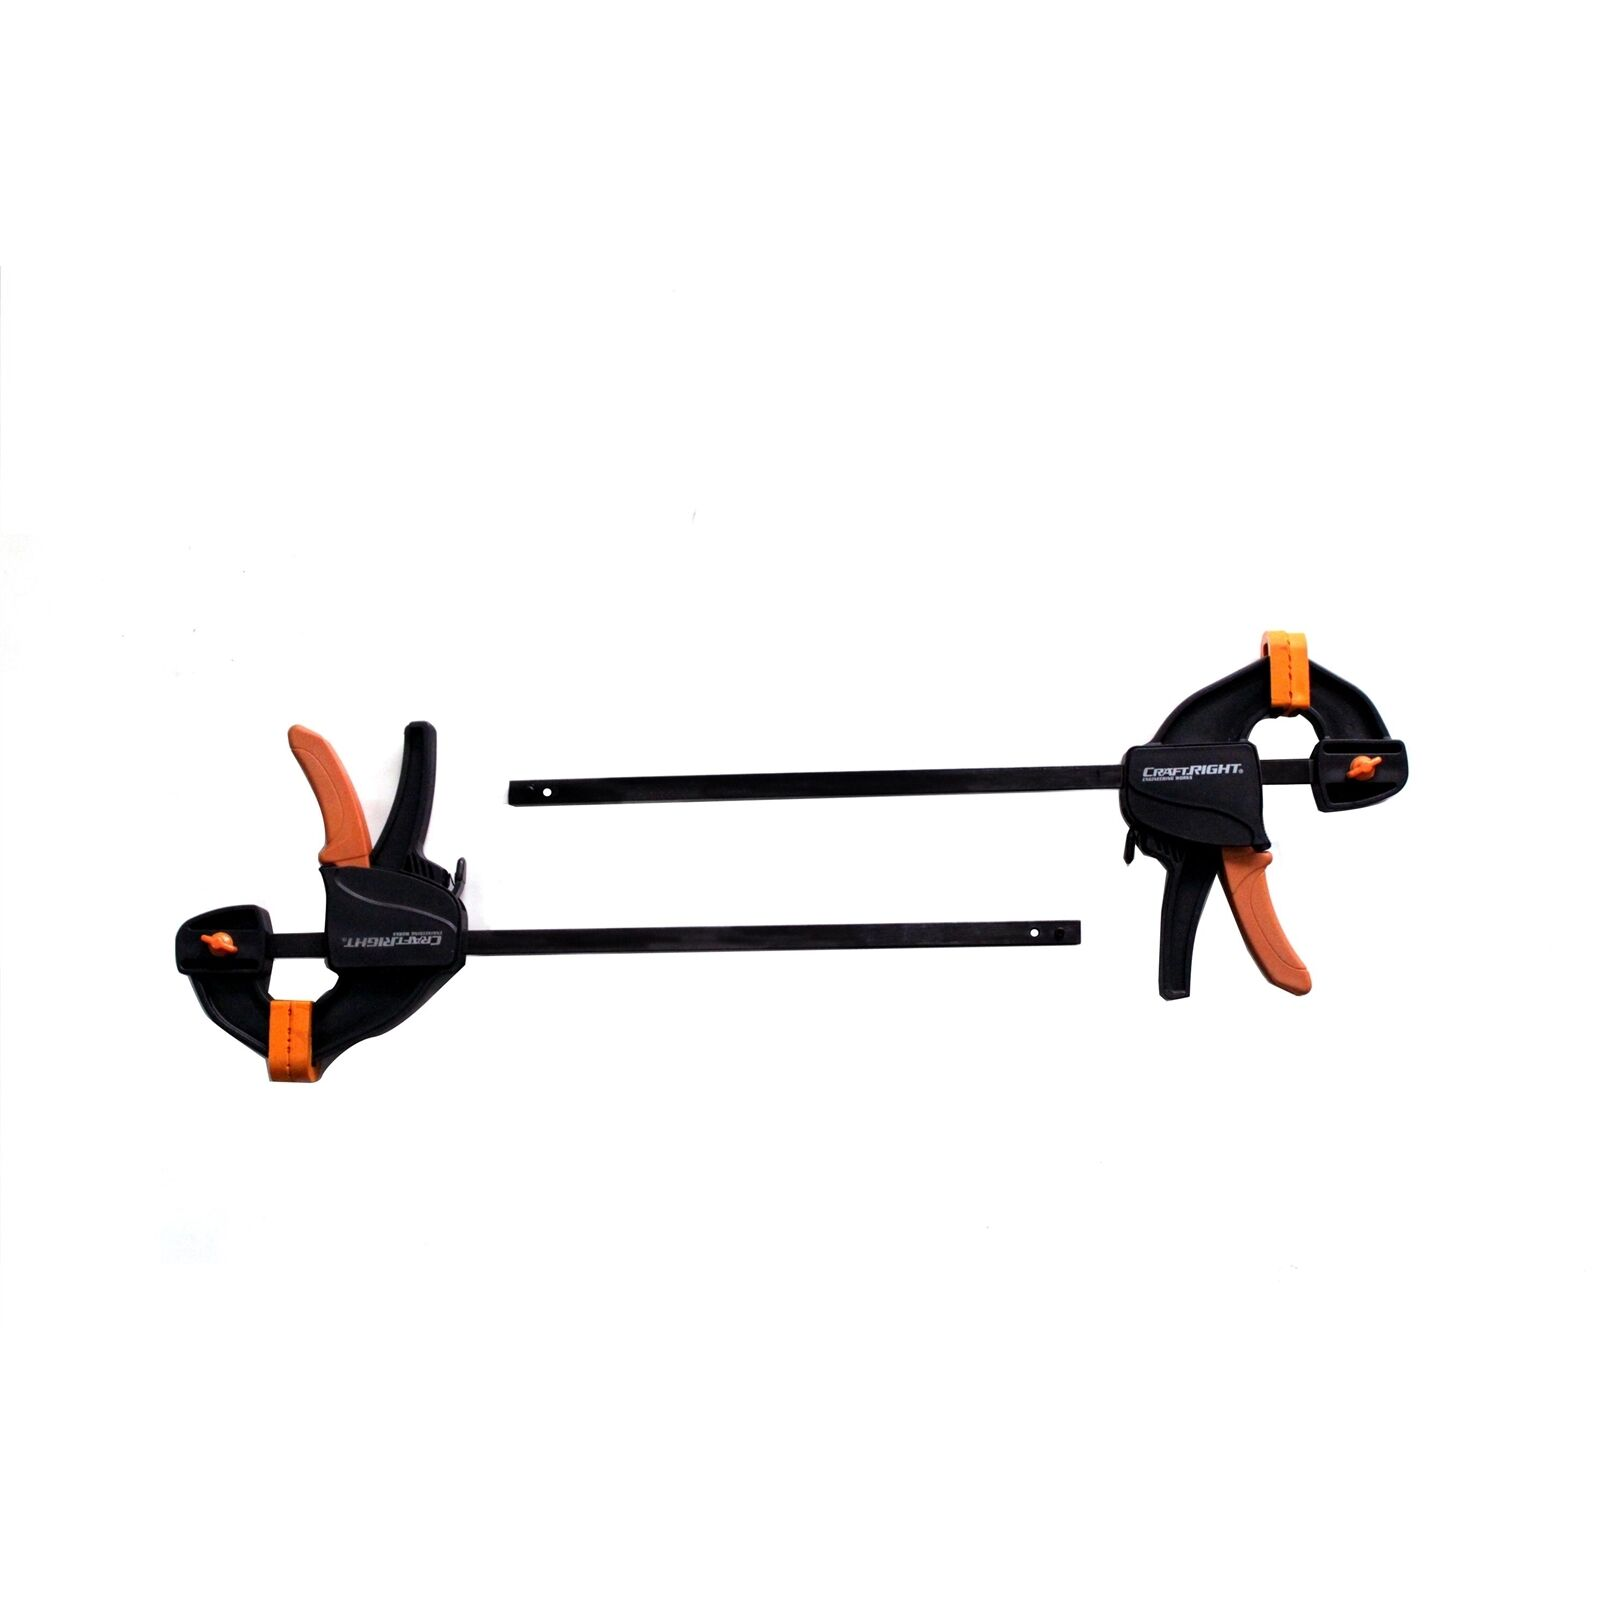 Craftright QUICK ACTION CLAMPS 2 Pieces, One Hand Operation - 300, 450 Or 600mm